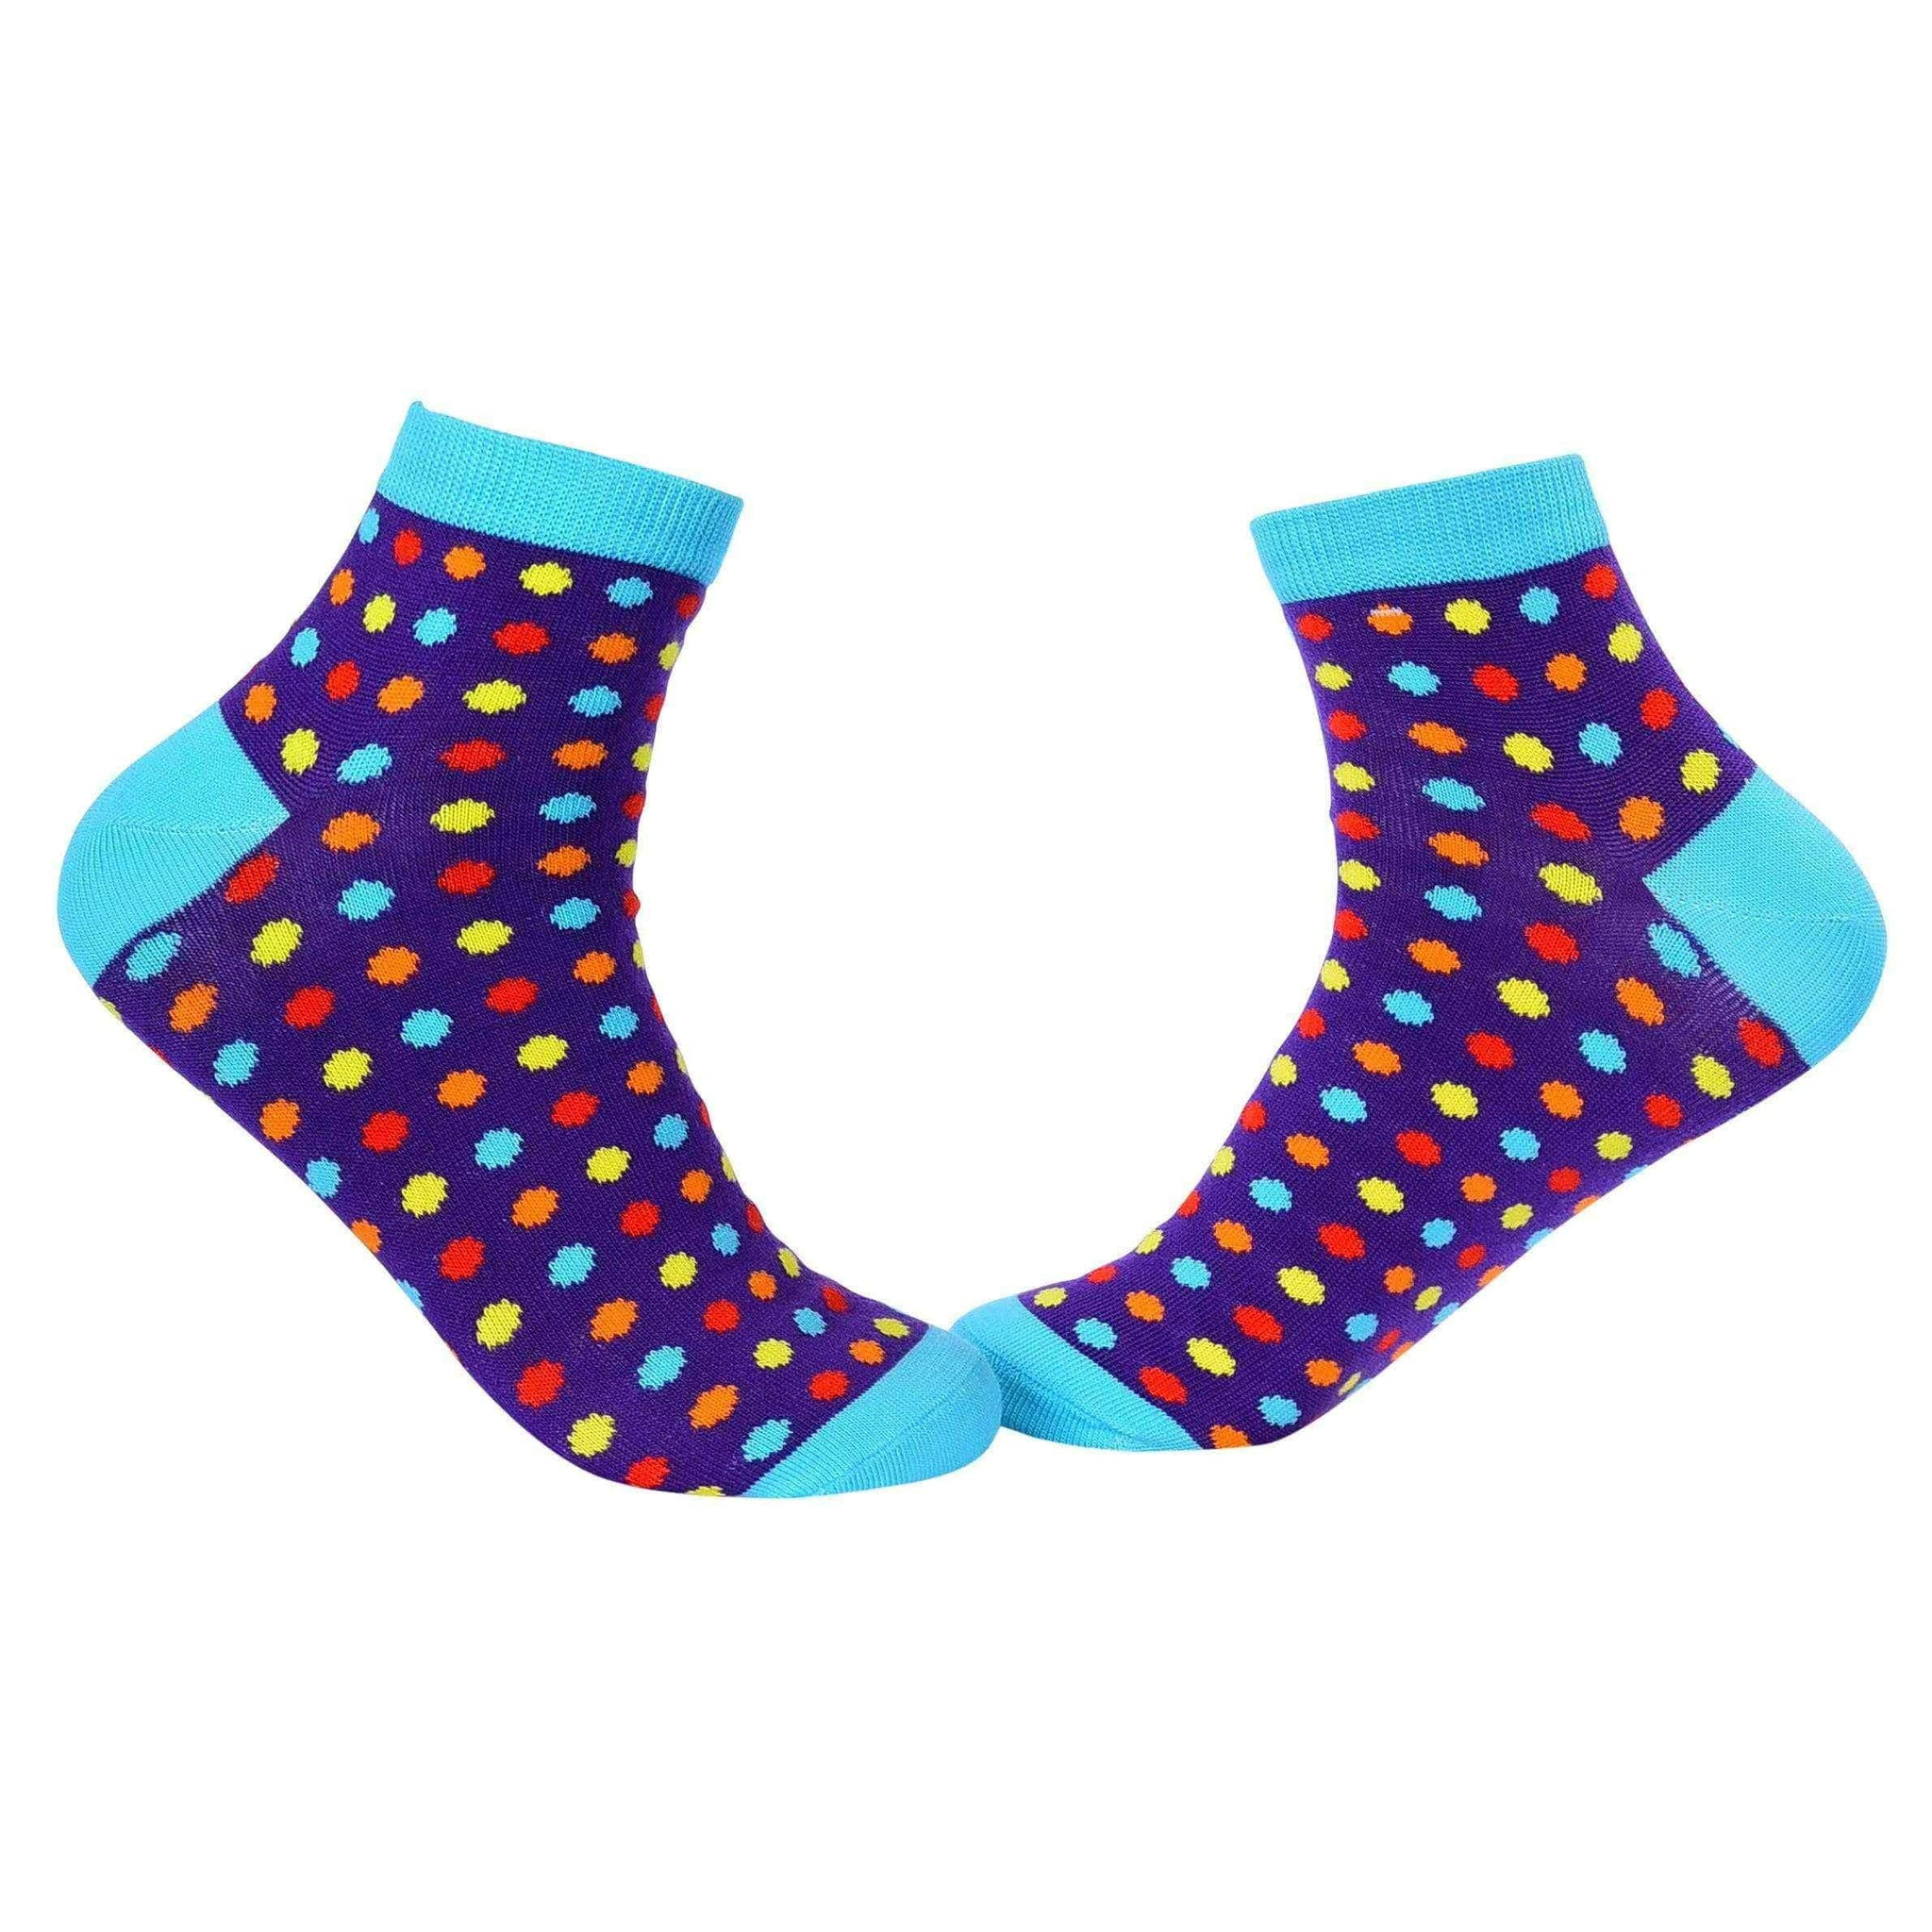 Small Polka Dots Quarter Socks - Violet - Tale Of Socks